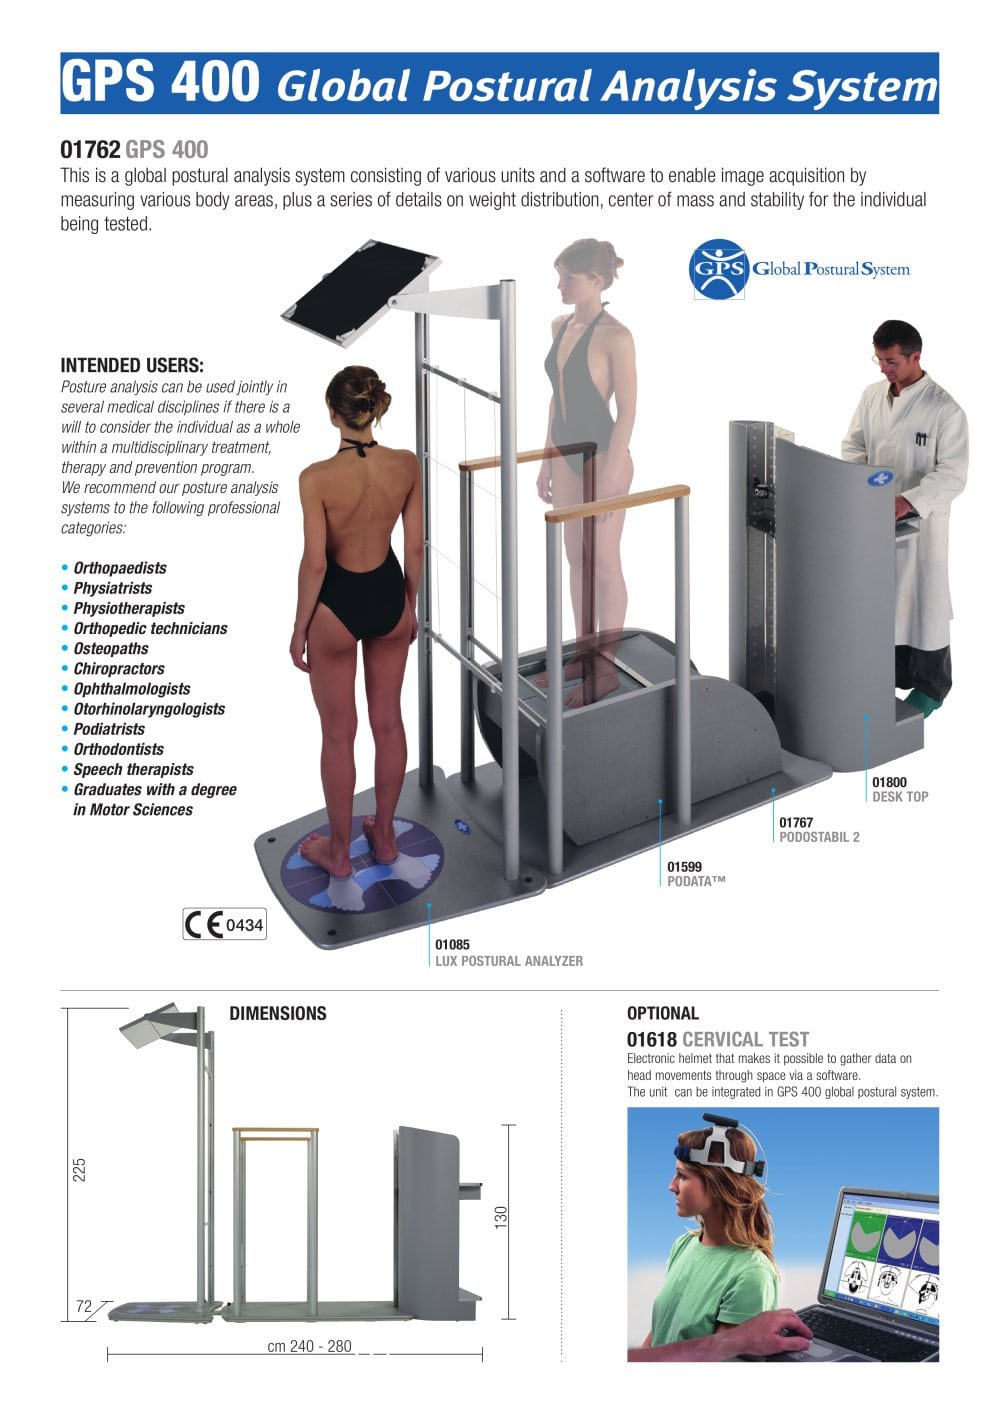 gps 400 global postural analysis system 1 2 pages